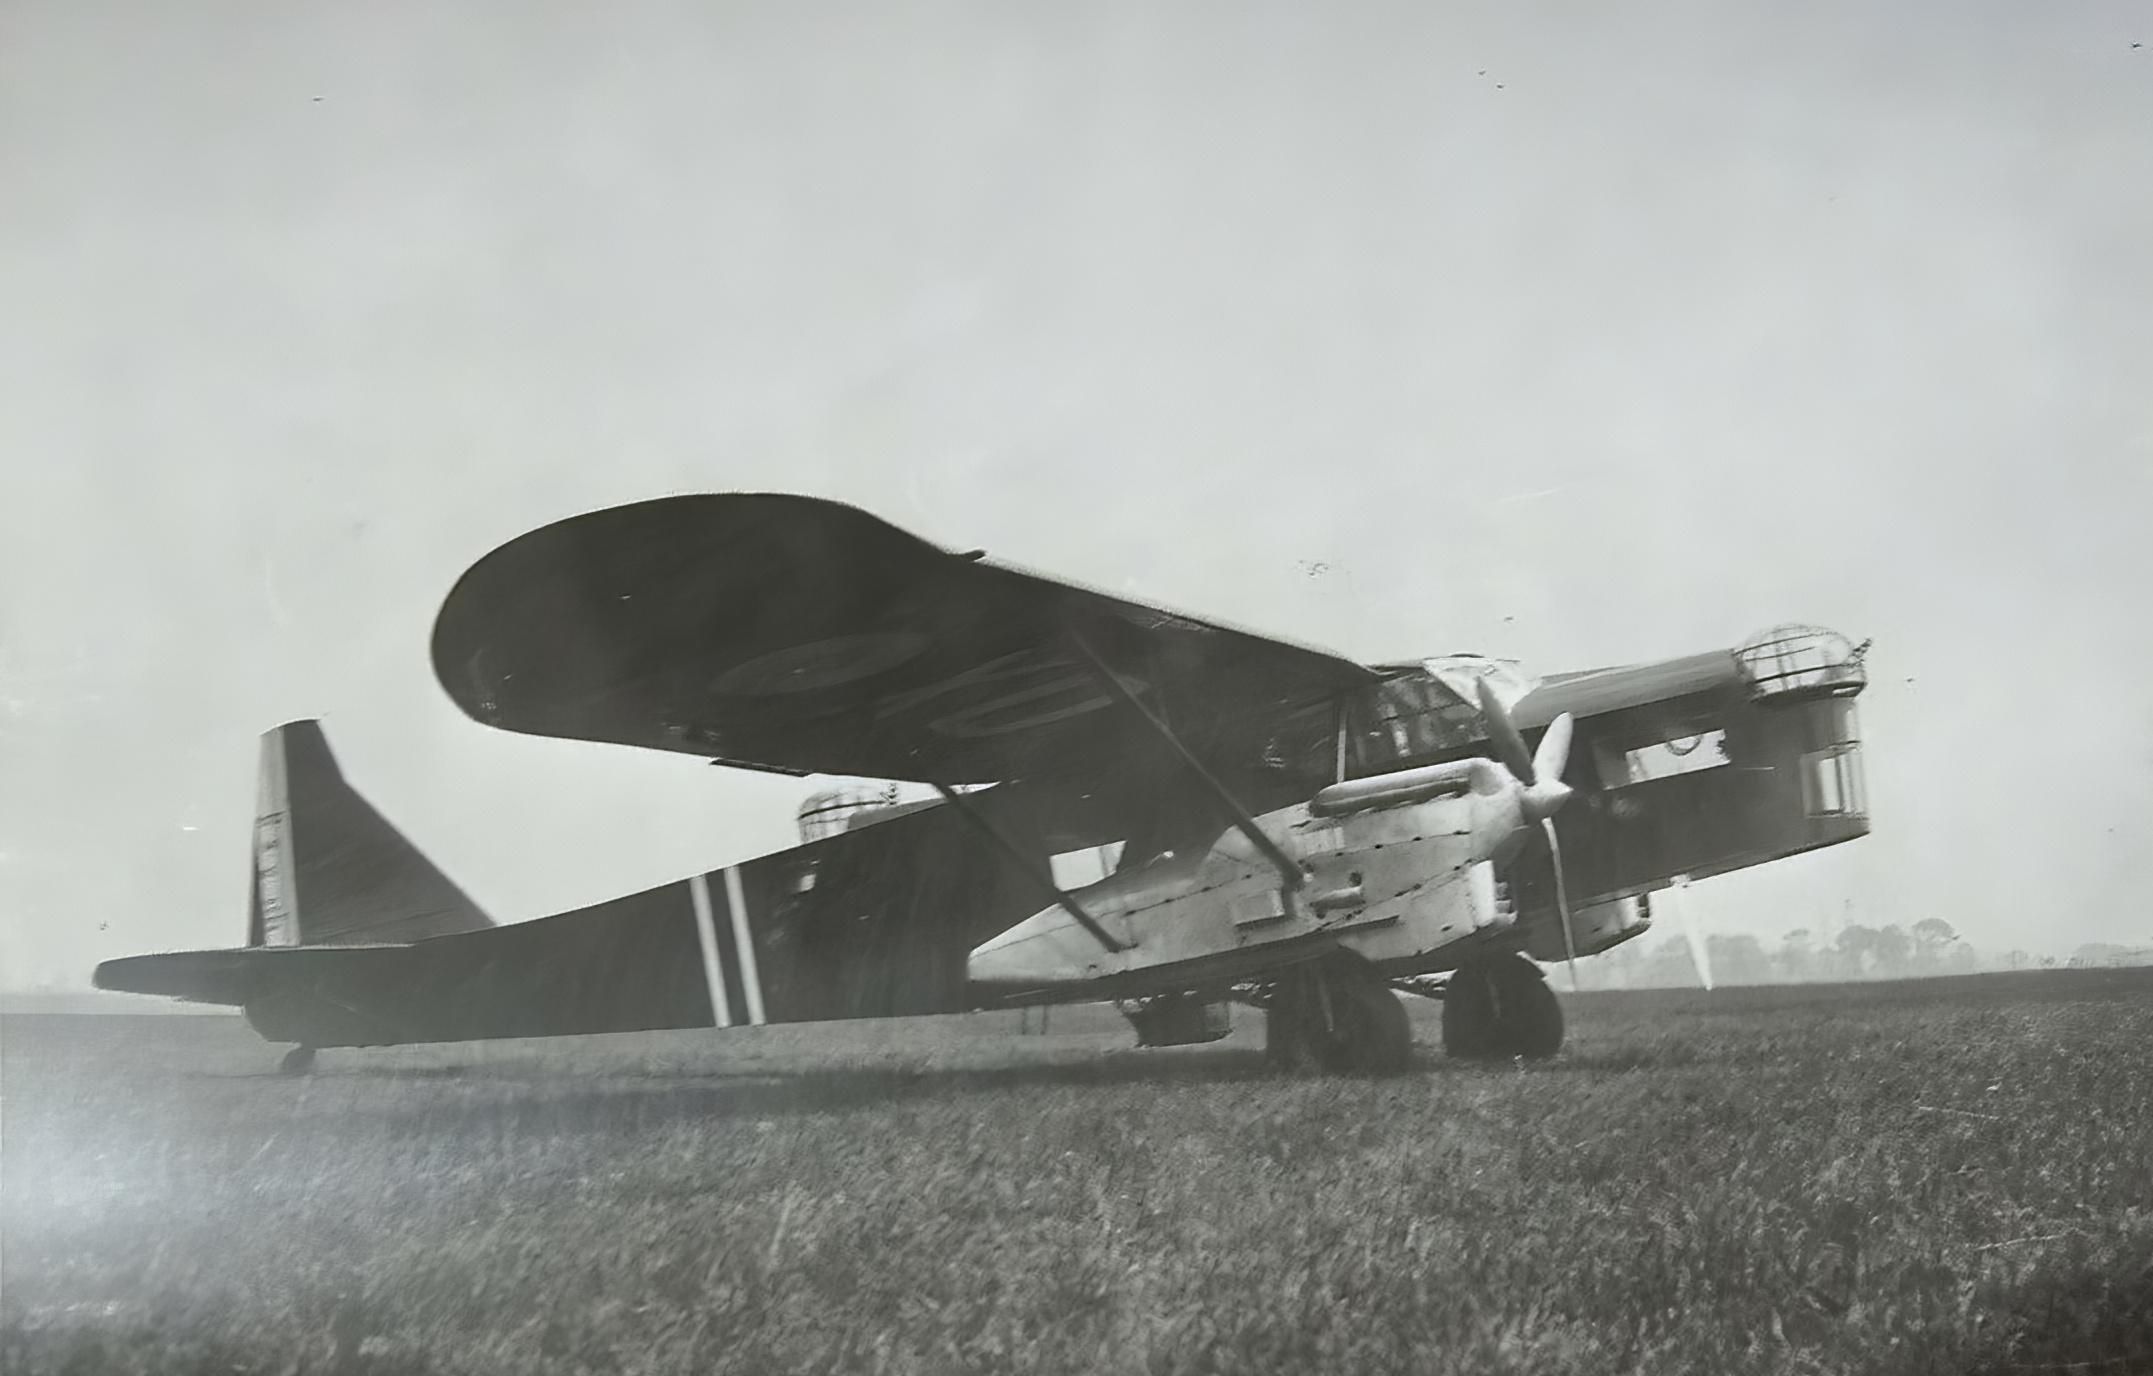 French Airforce Potez 540 at a French airbase France ebay 02